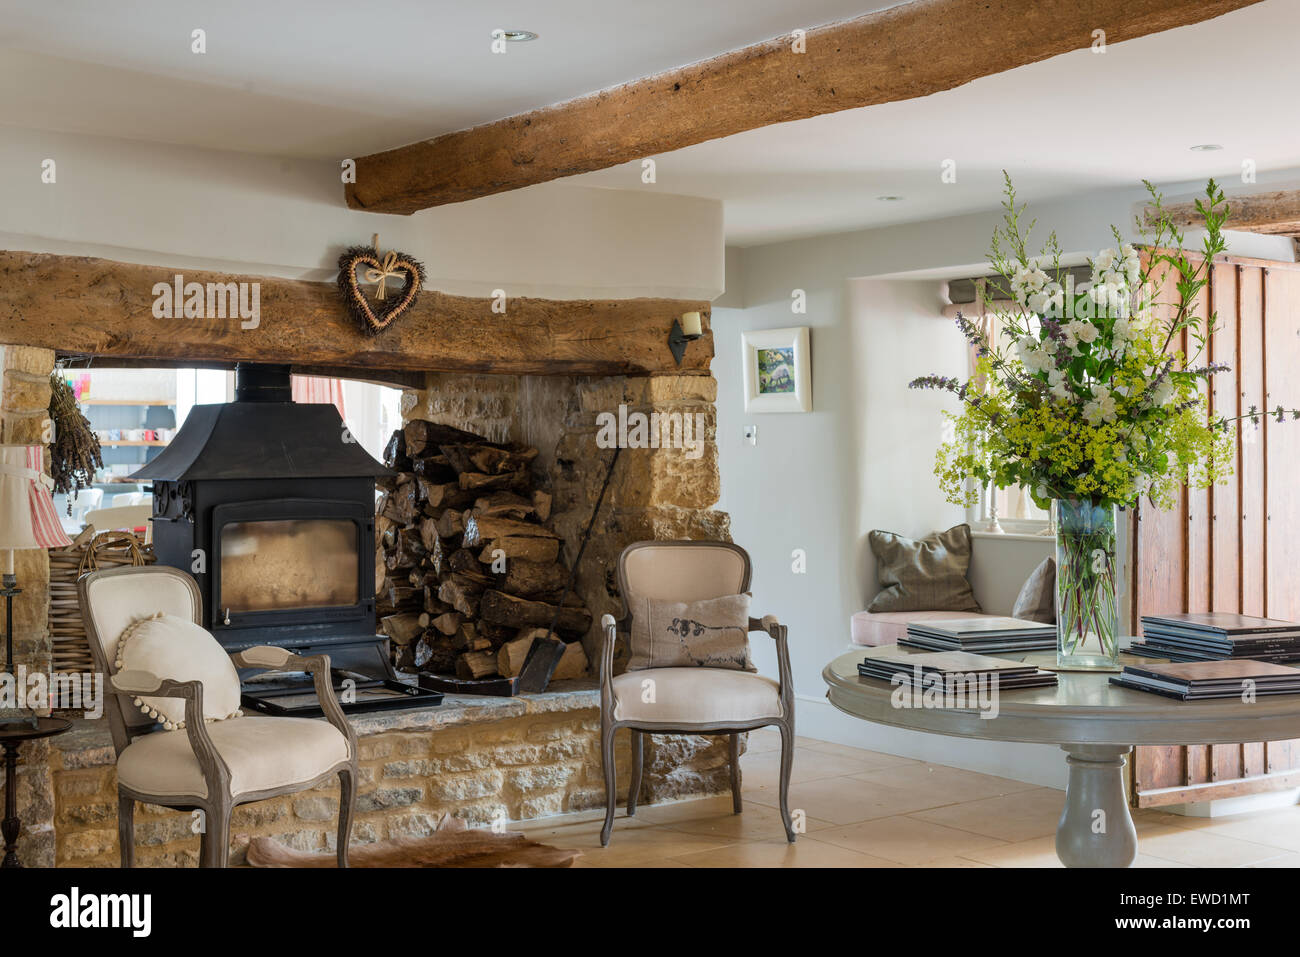 Wood burning stove in entrance hall with pair of Louis XV chairs and round console table - Stock Image